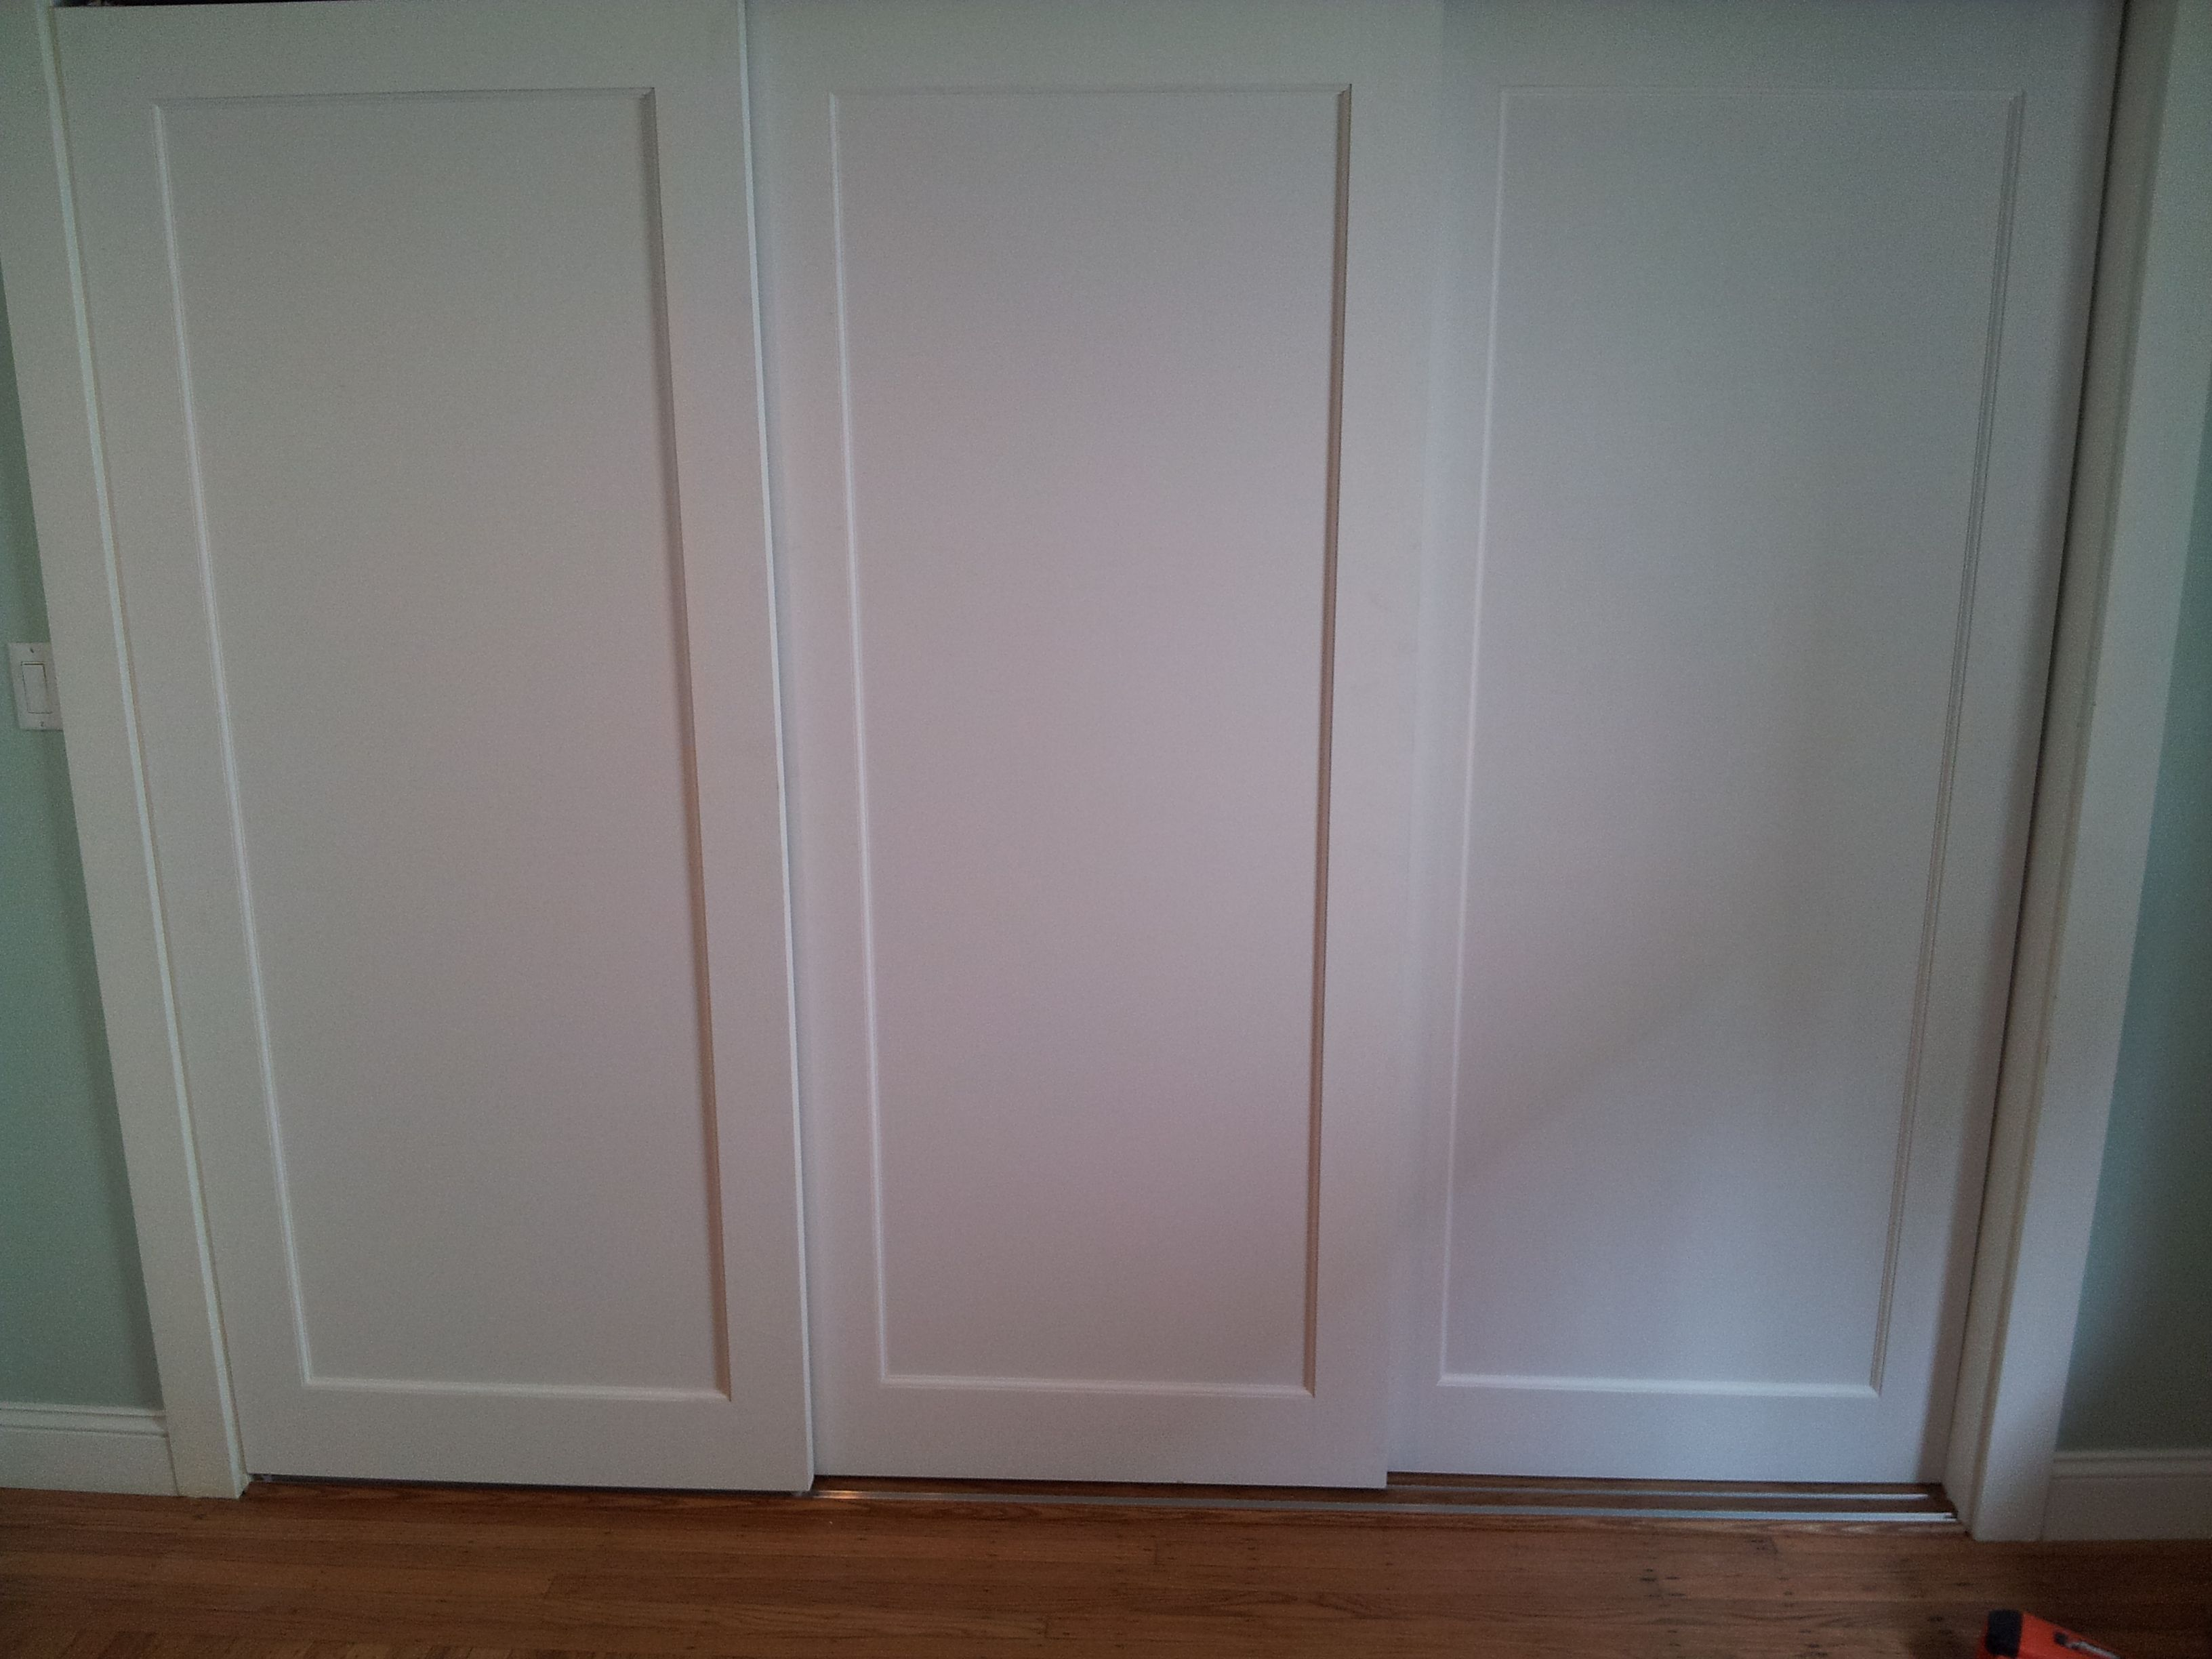 Installed 3 Panel Doors On Custom Sliding Track For Extra Wide Closet Sliding Mirror Closet Doors Sliding Closet Doors Closet Door Track